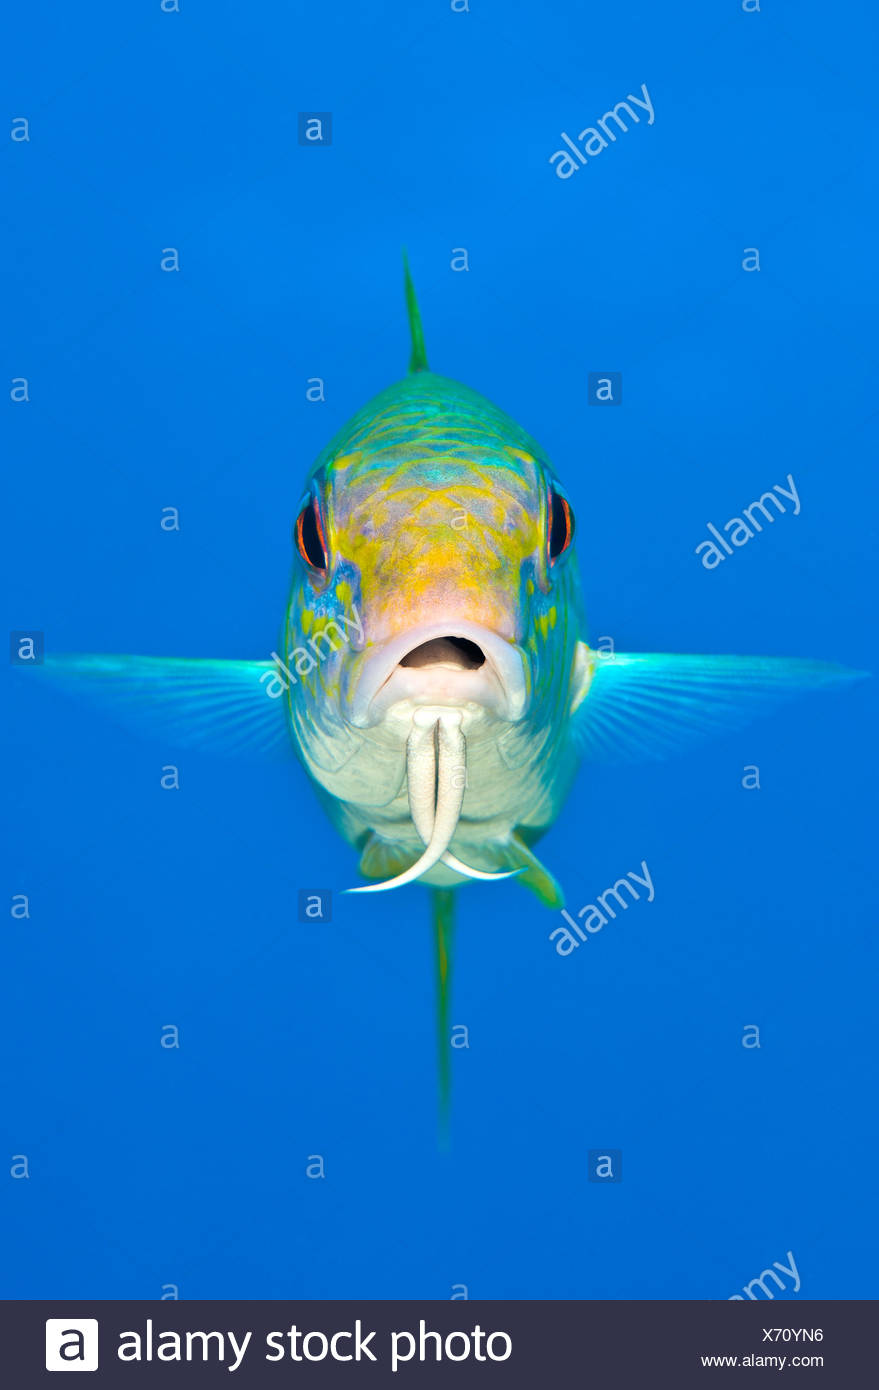 Yellow goatfish (Mulloidichthys martinicus) swimming above the reef, West End, Grand Cayman, Cayman Islands, British West Indies, Caribbean Sea. - Stock Image